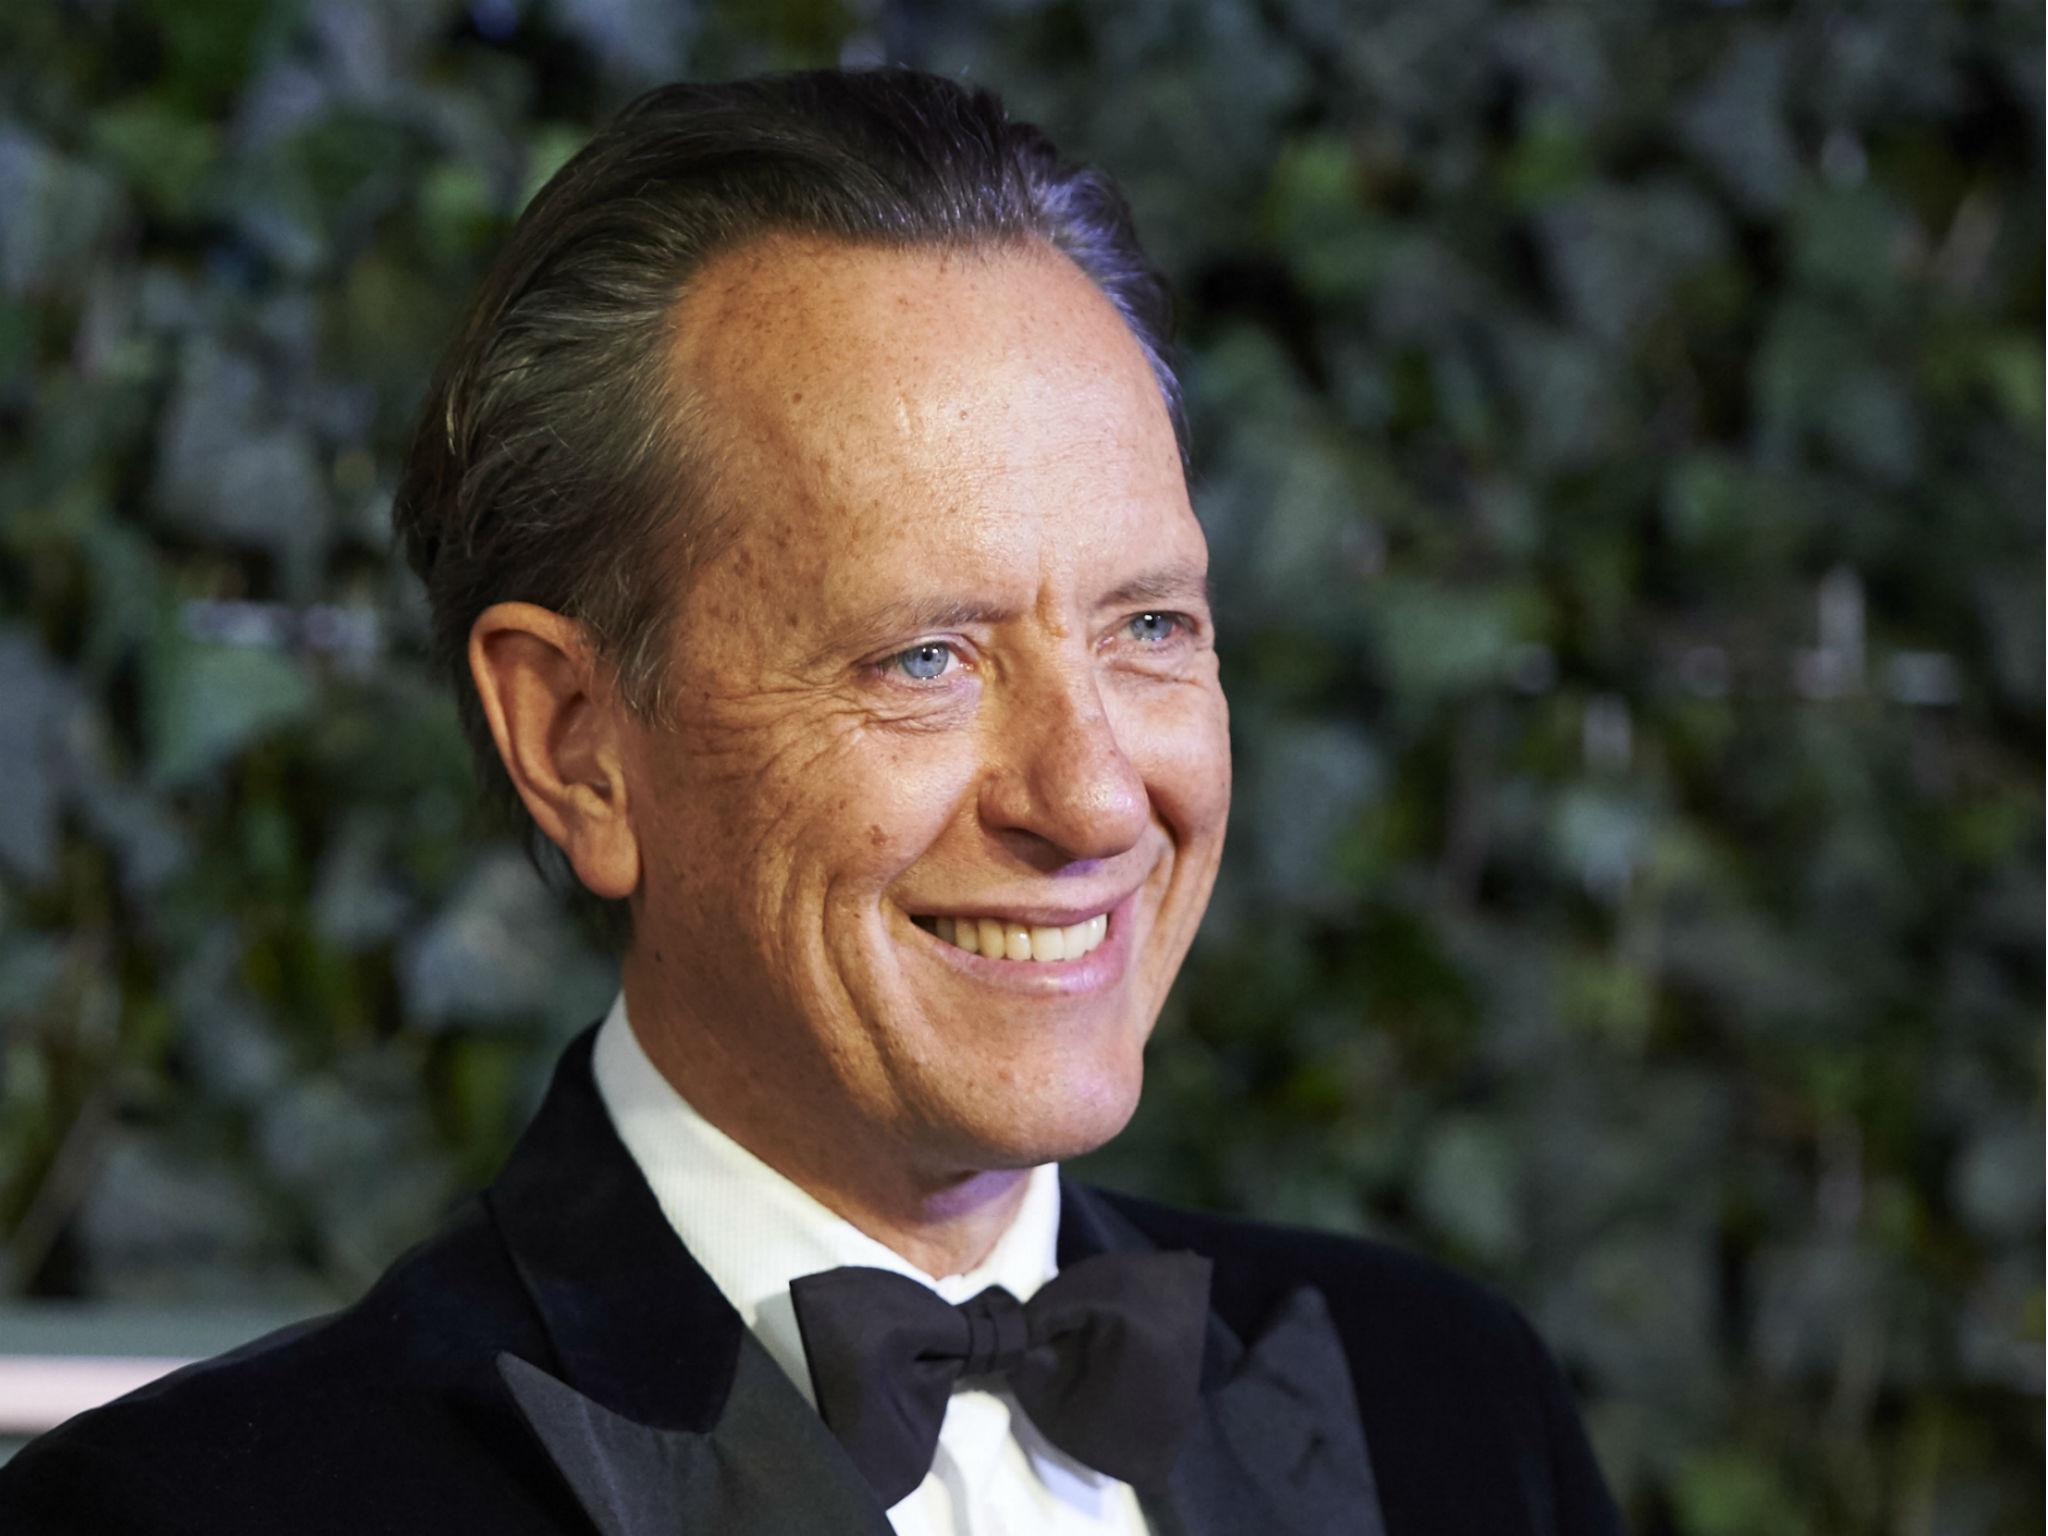 Star Wars: Richard E Grant told by JJ Abrams that 'nobody gets a script' before joining film